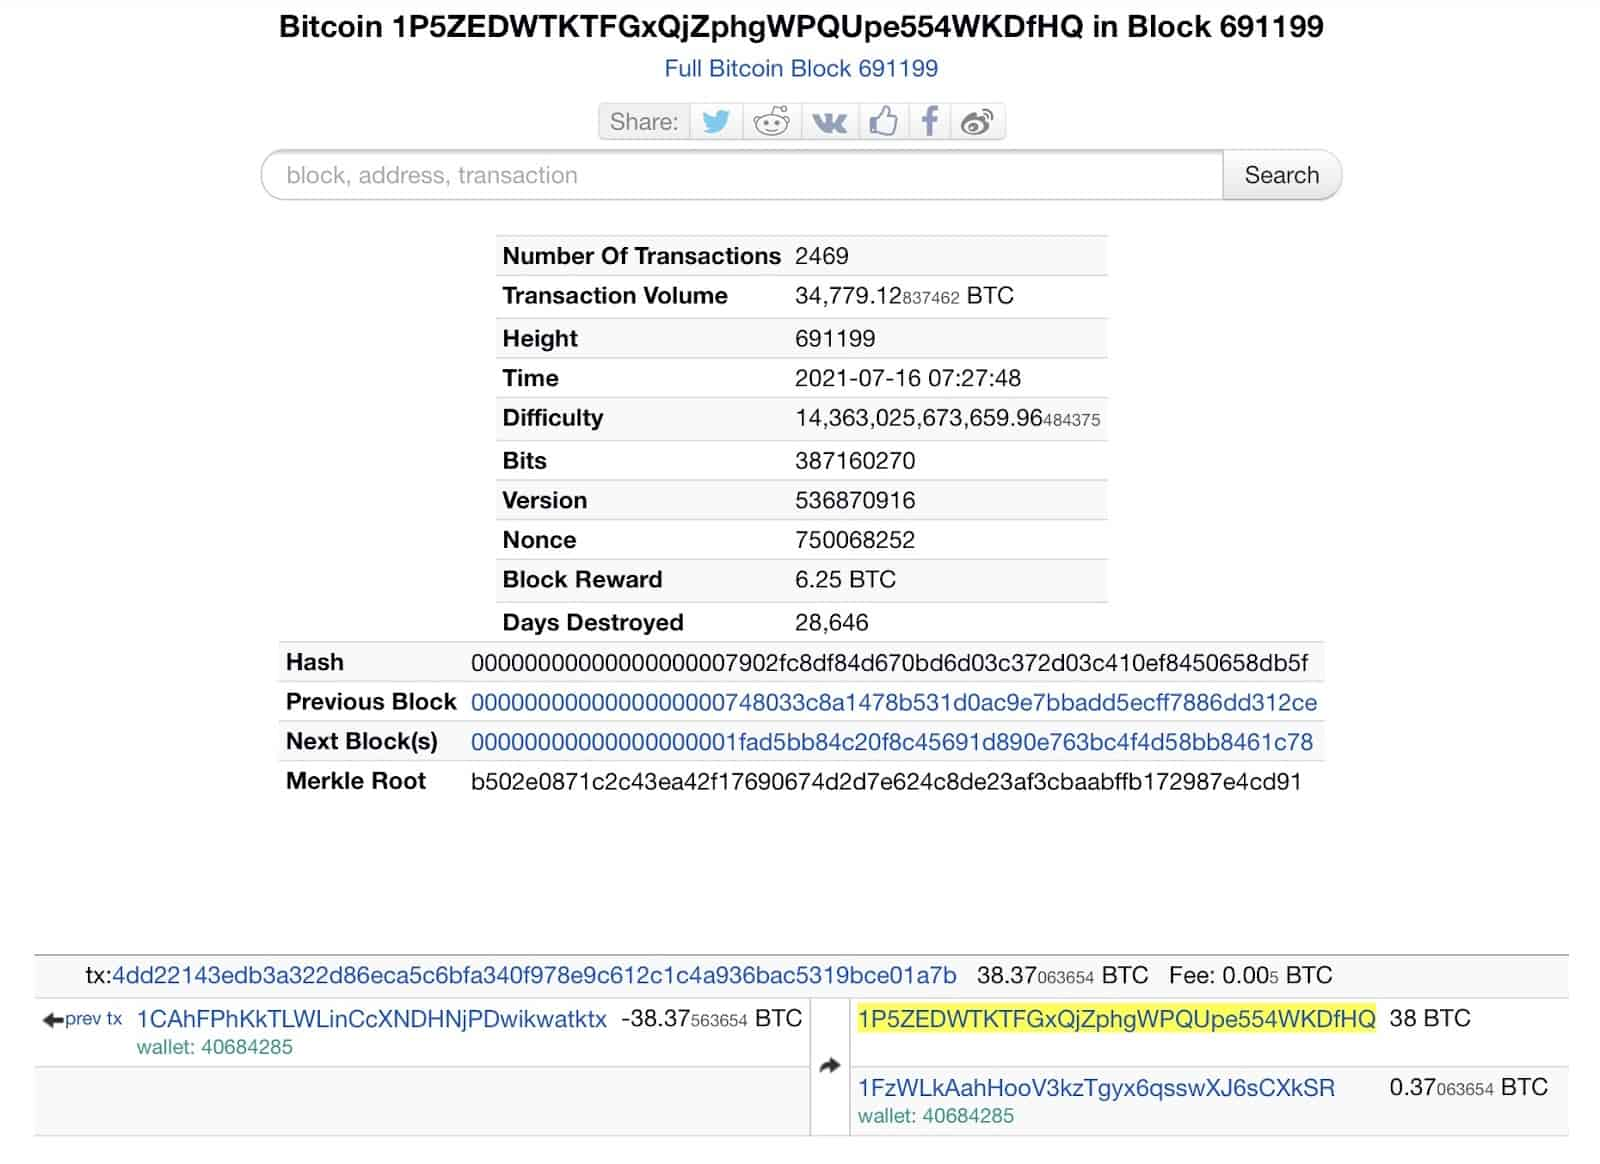 Mysterious Bitcoin Whale Who Sold at $60K Bought Over 17K BTC Between $30-39K